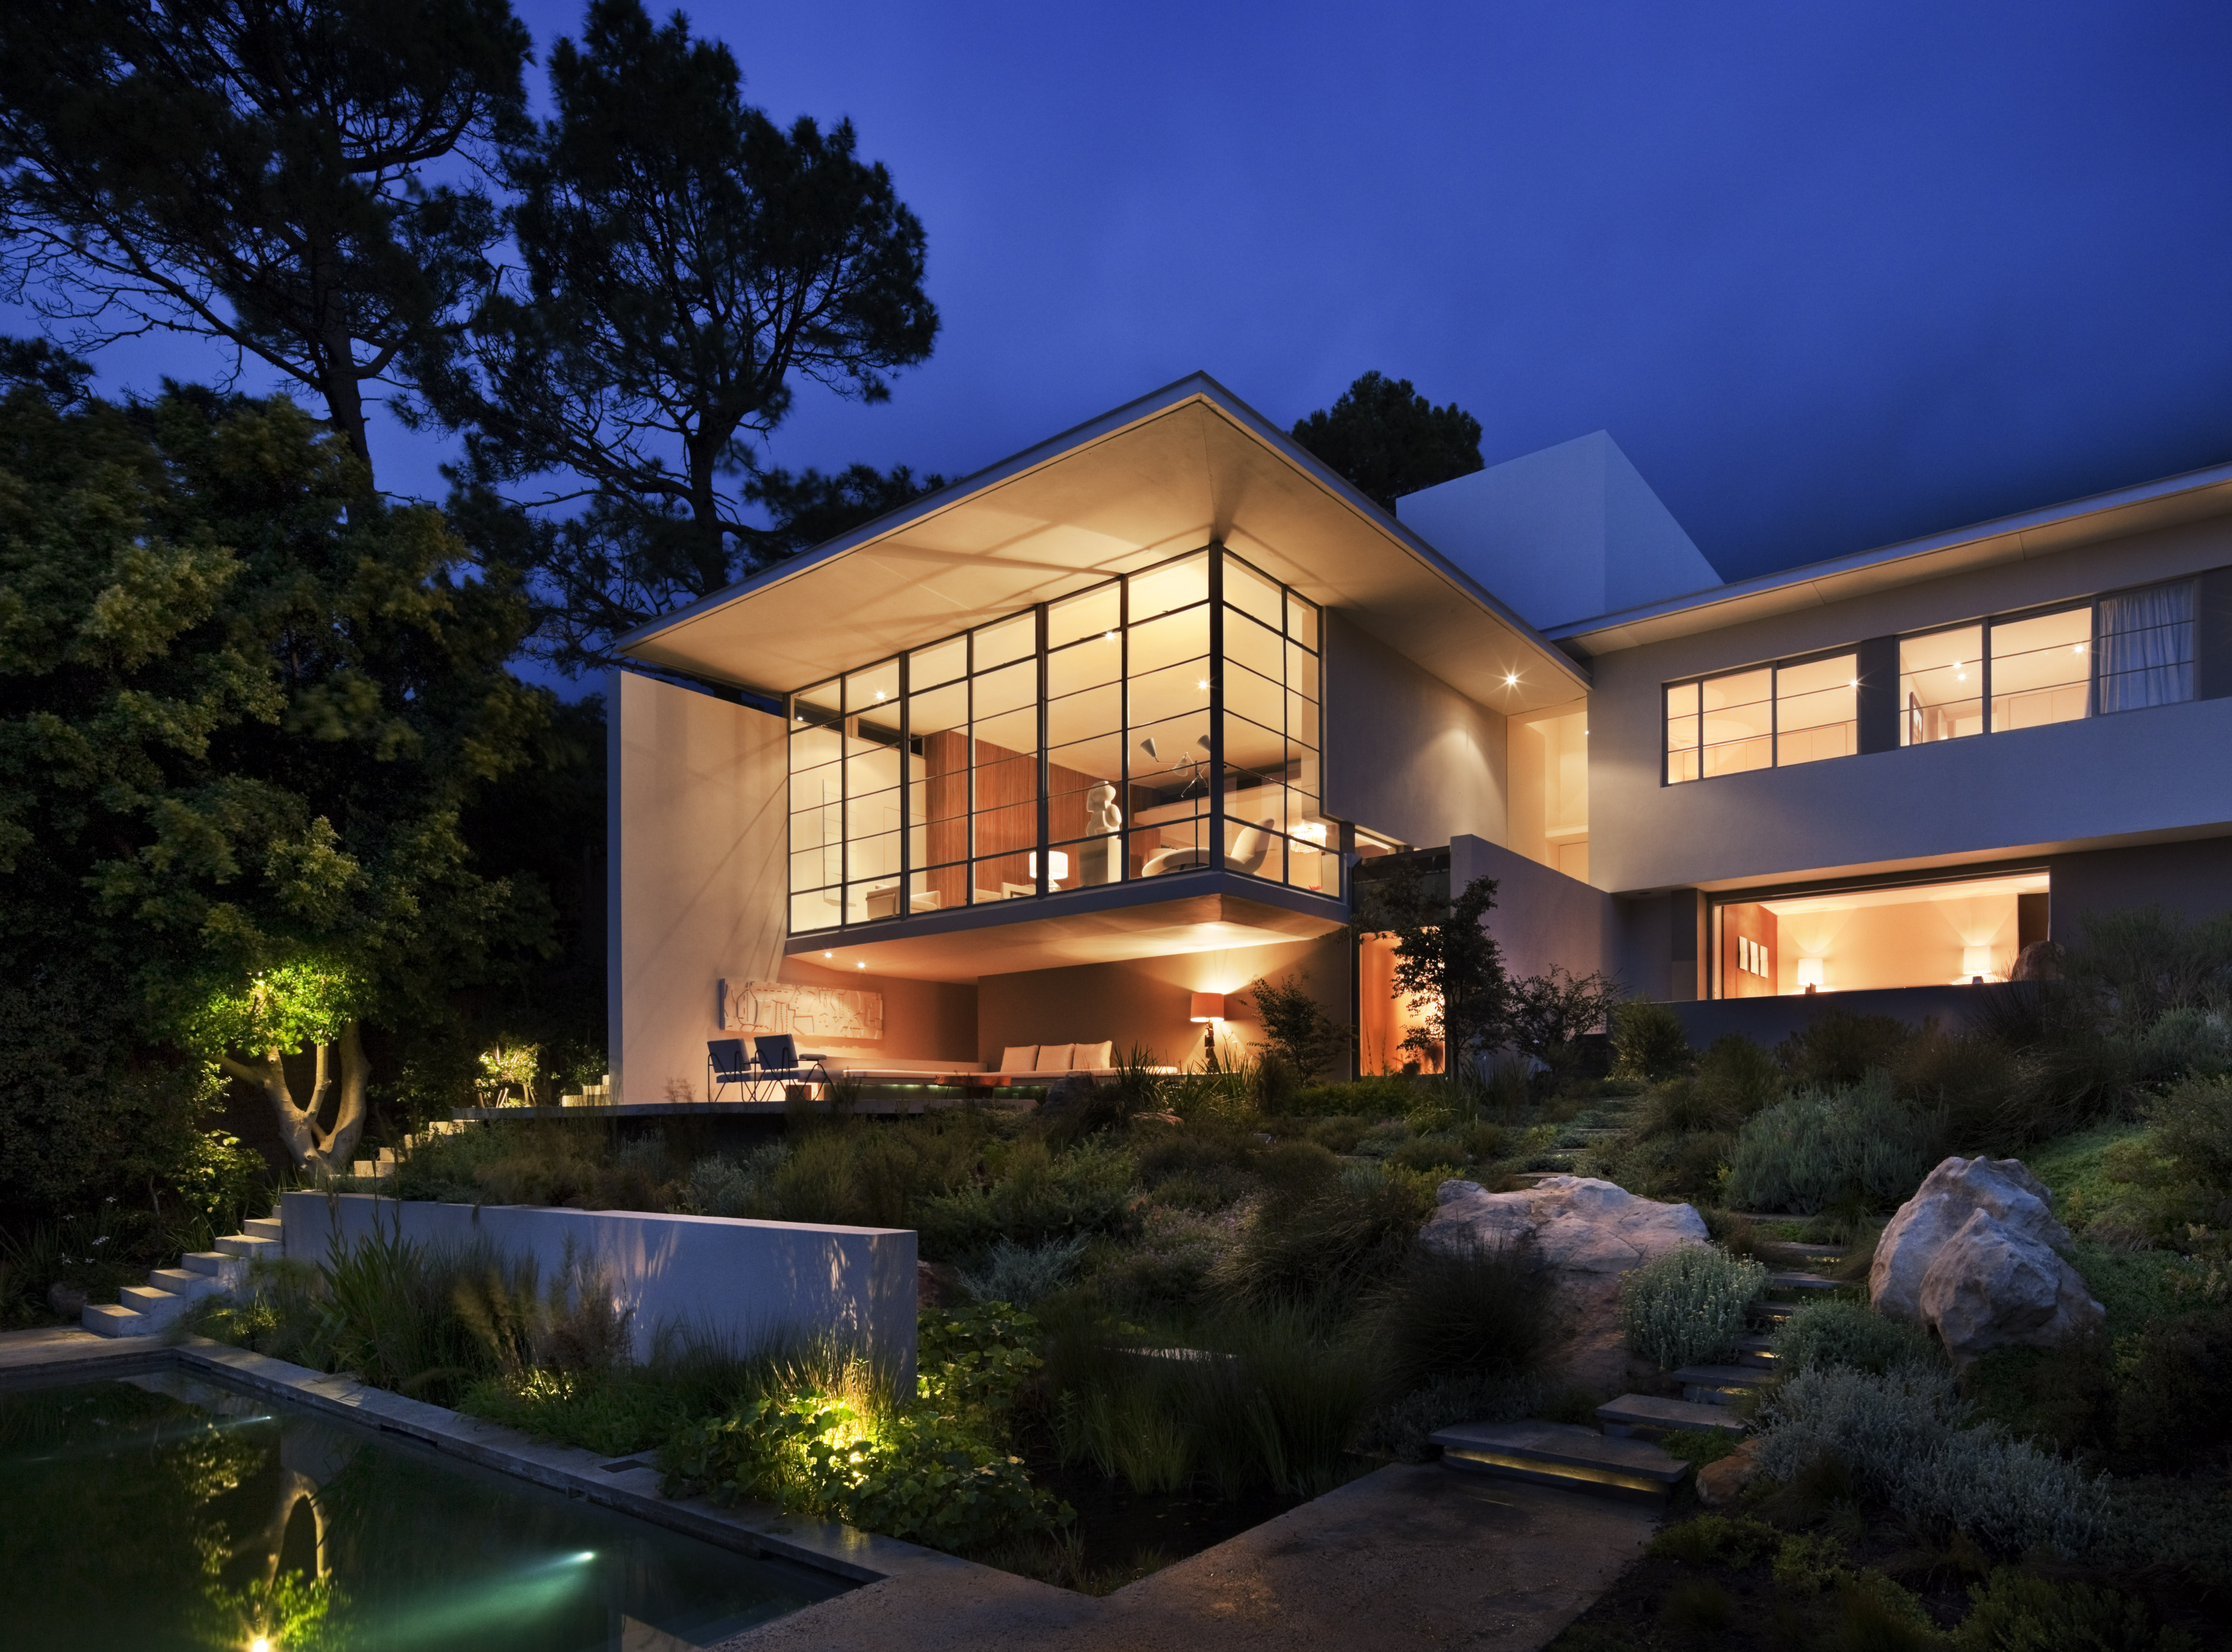 Asla 2010 professional awards bridle road residence - Architectural home designs in south africa ...